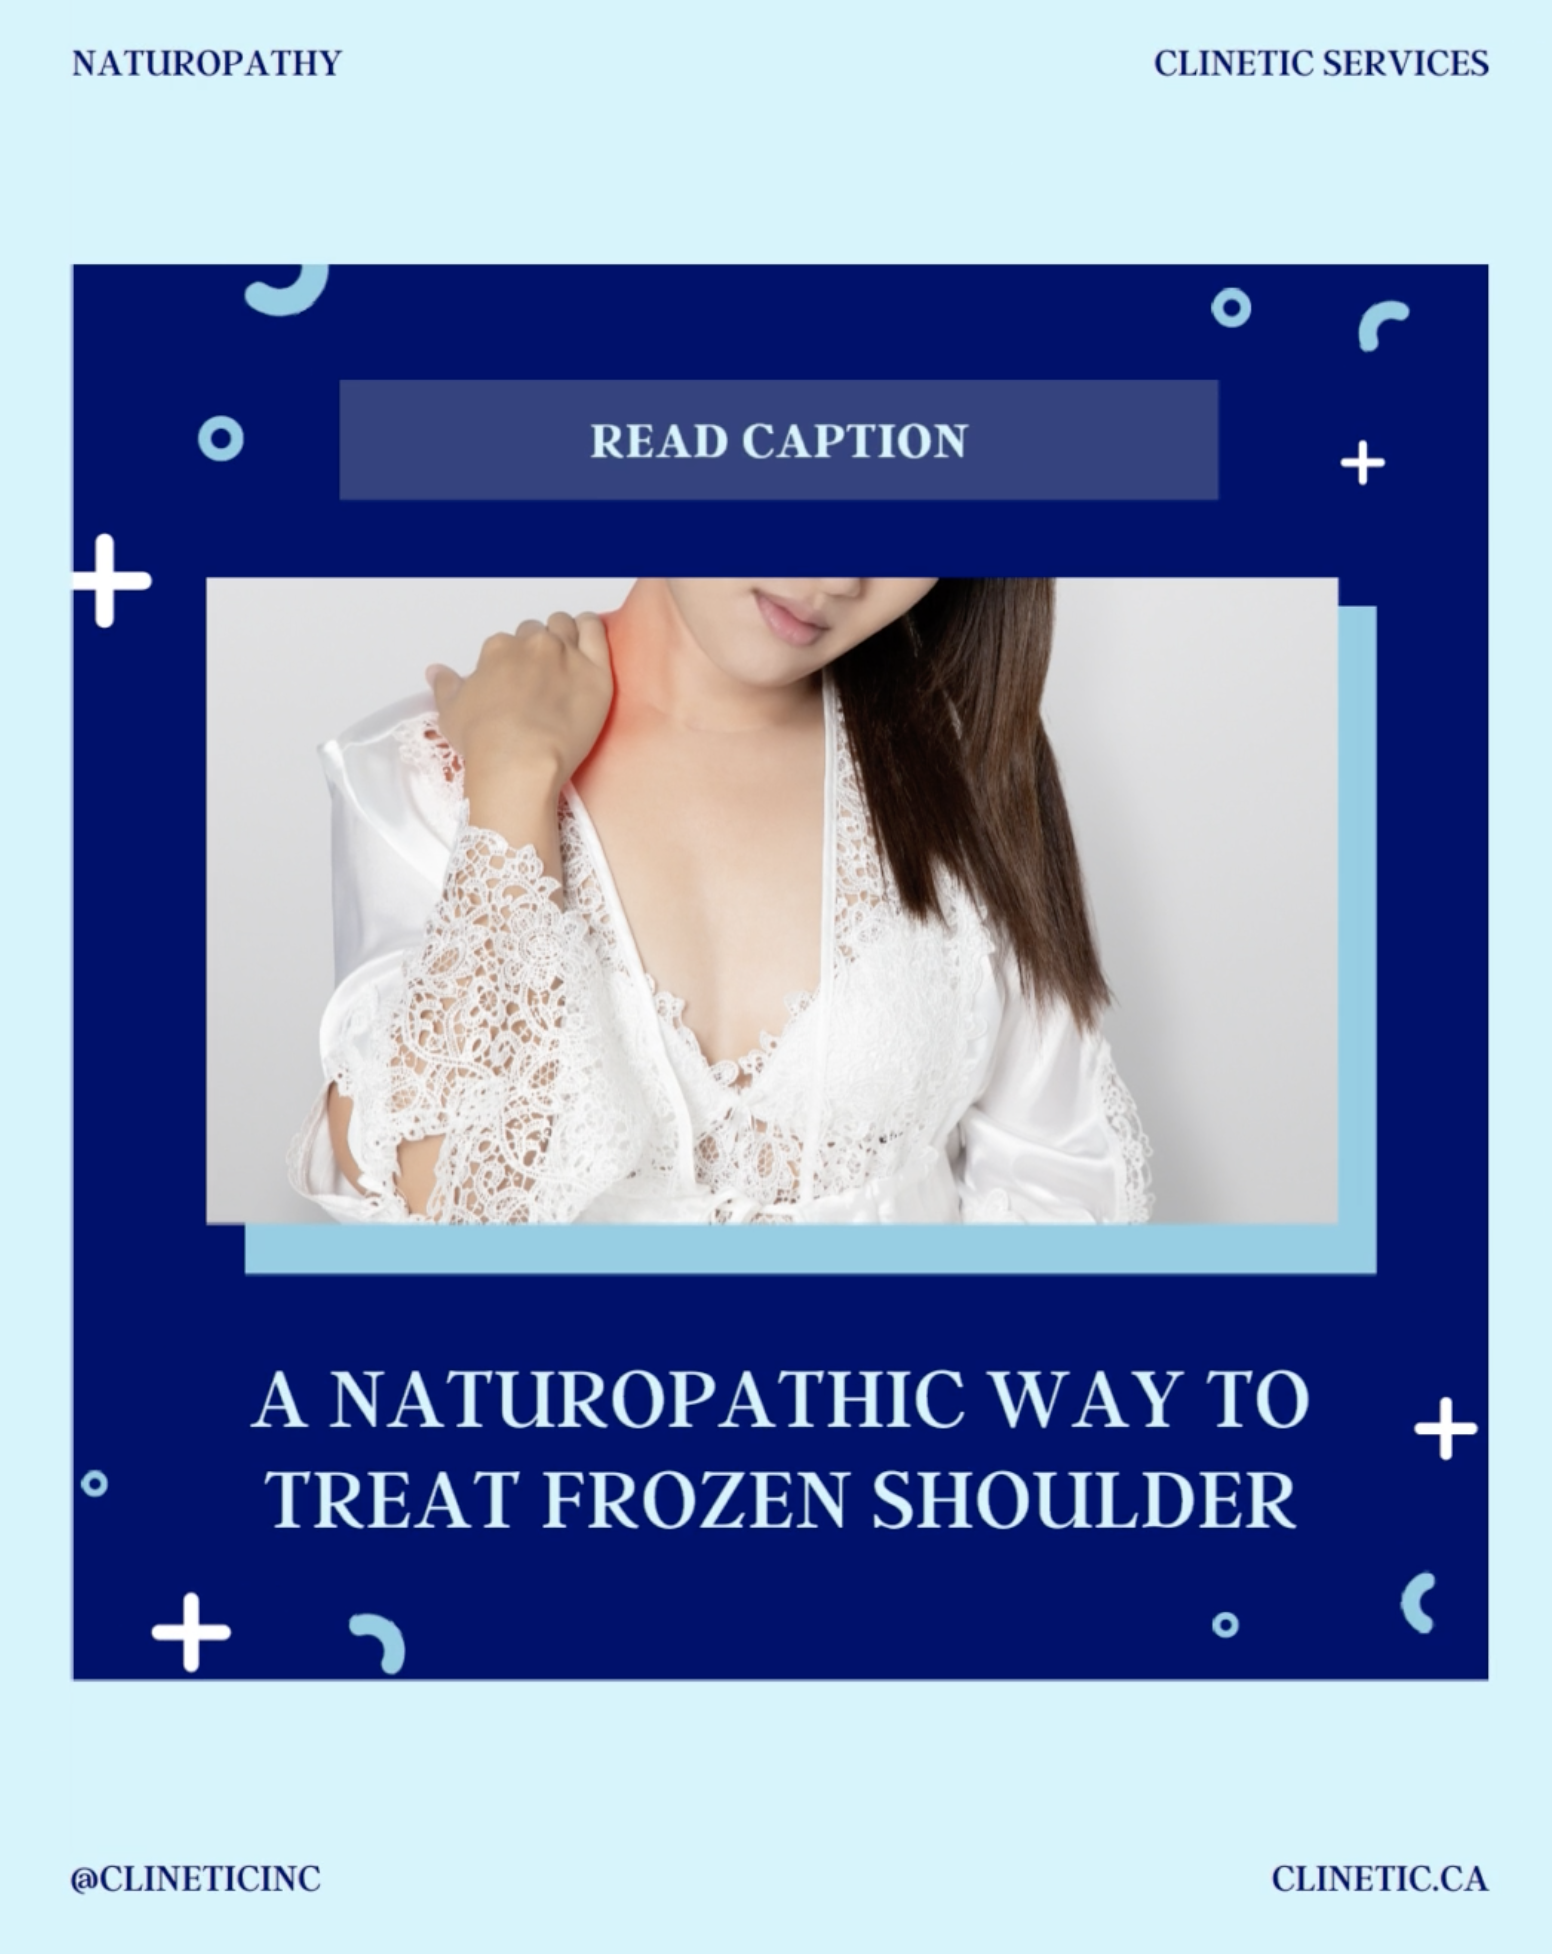 A Naturopathic way to treat Frozen Shoulder